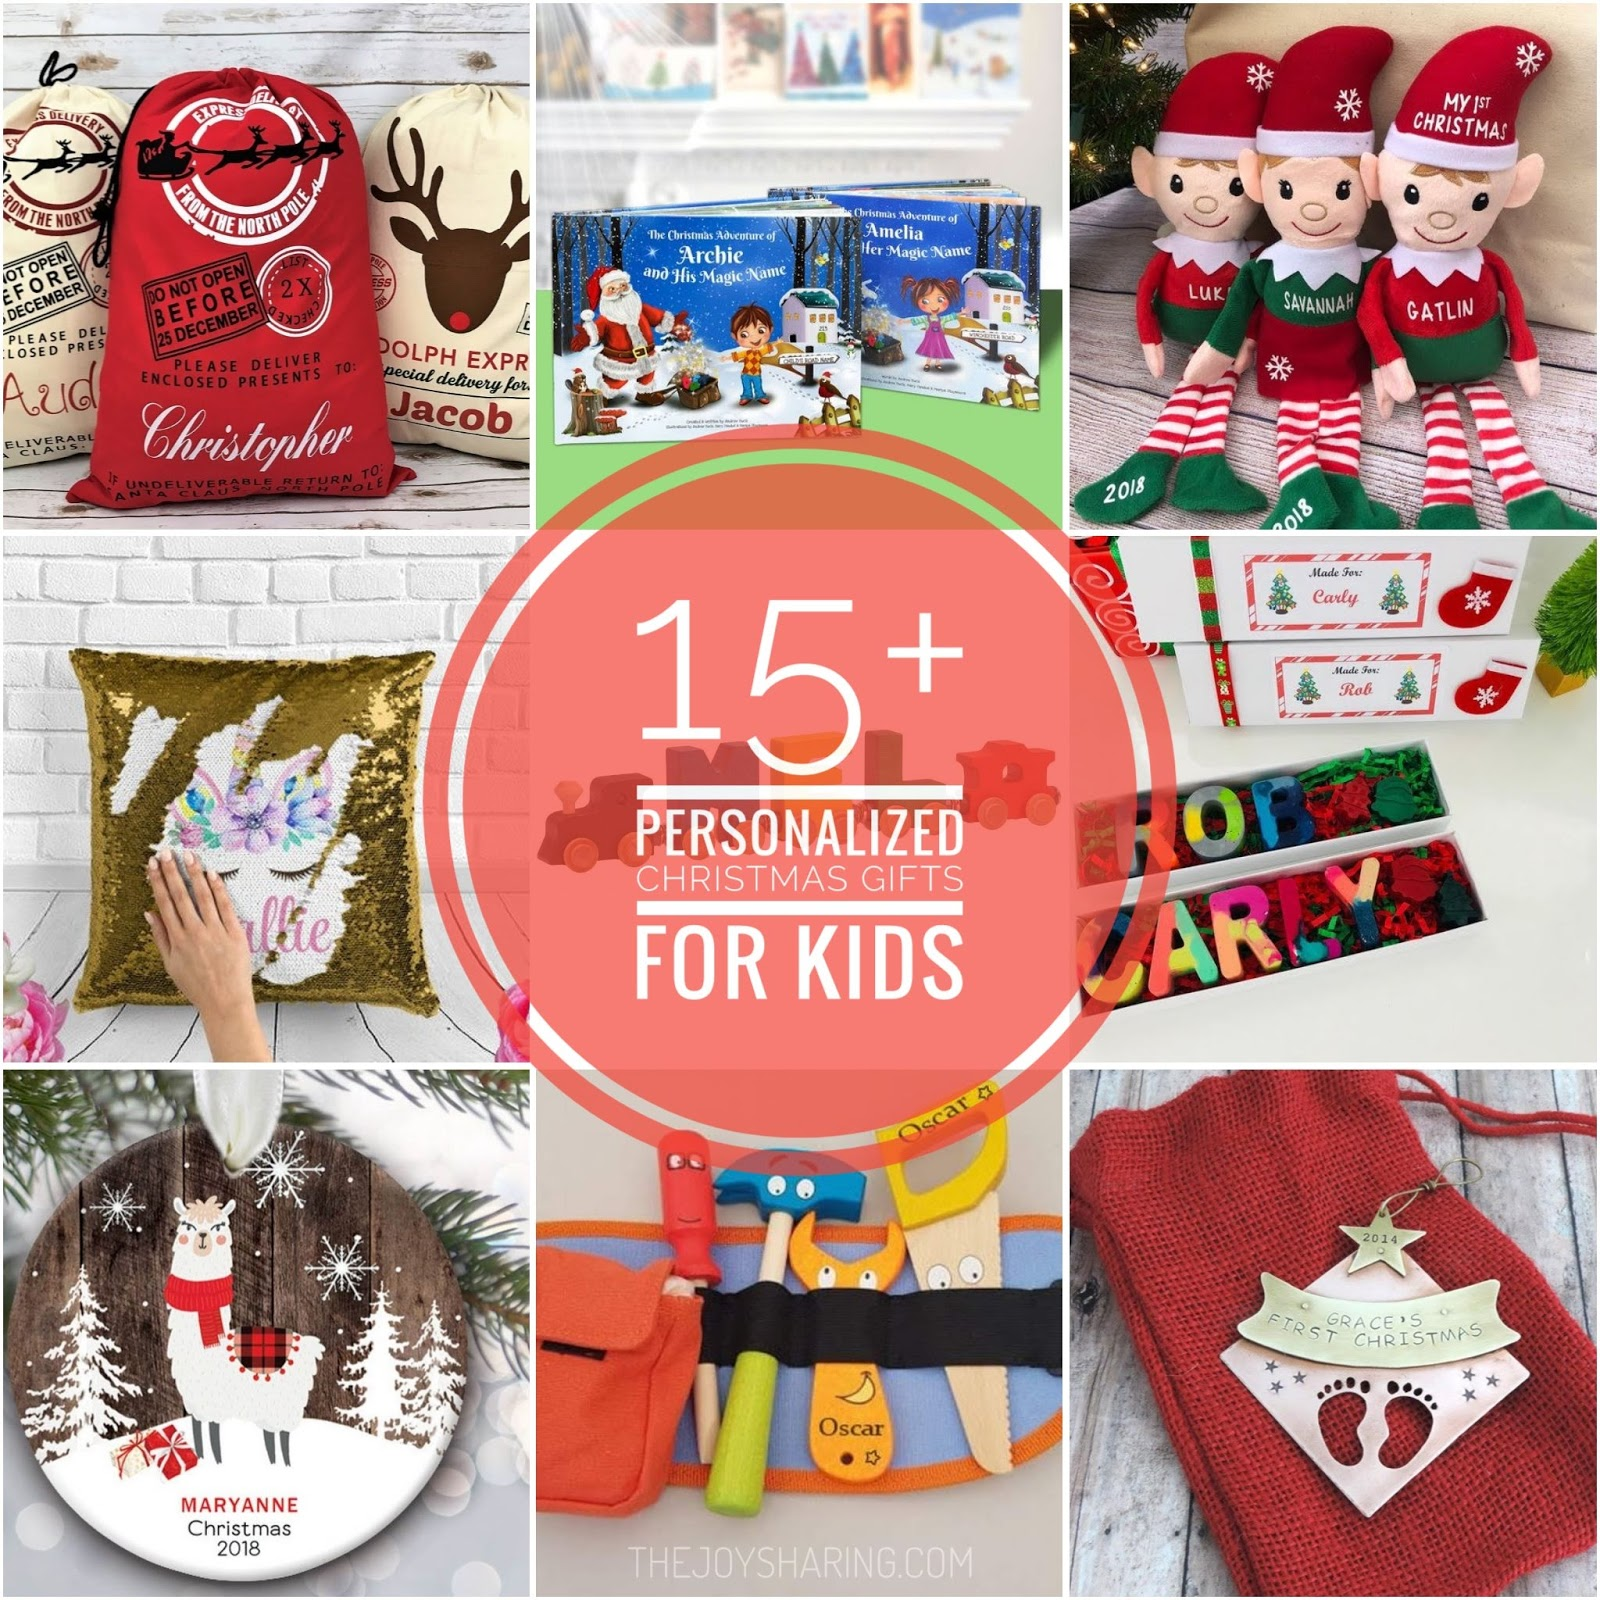 Christmas Gifts, Christmas Gift Guide, Christmas Stocking Stuffer, Holiday Gift Guide 2018, Christmas Gifts for Kids